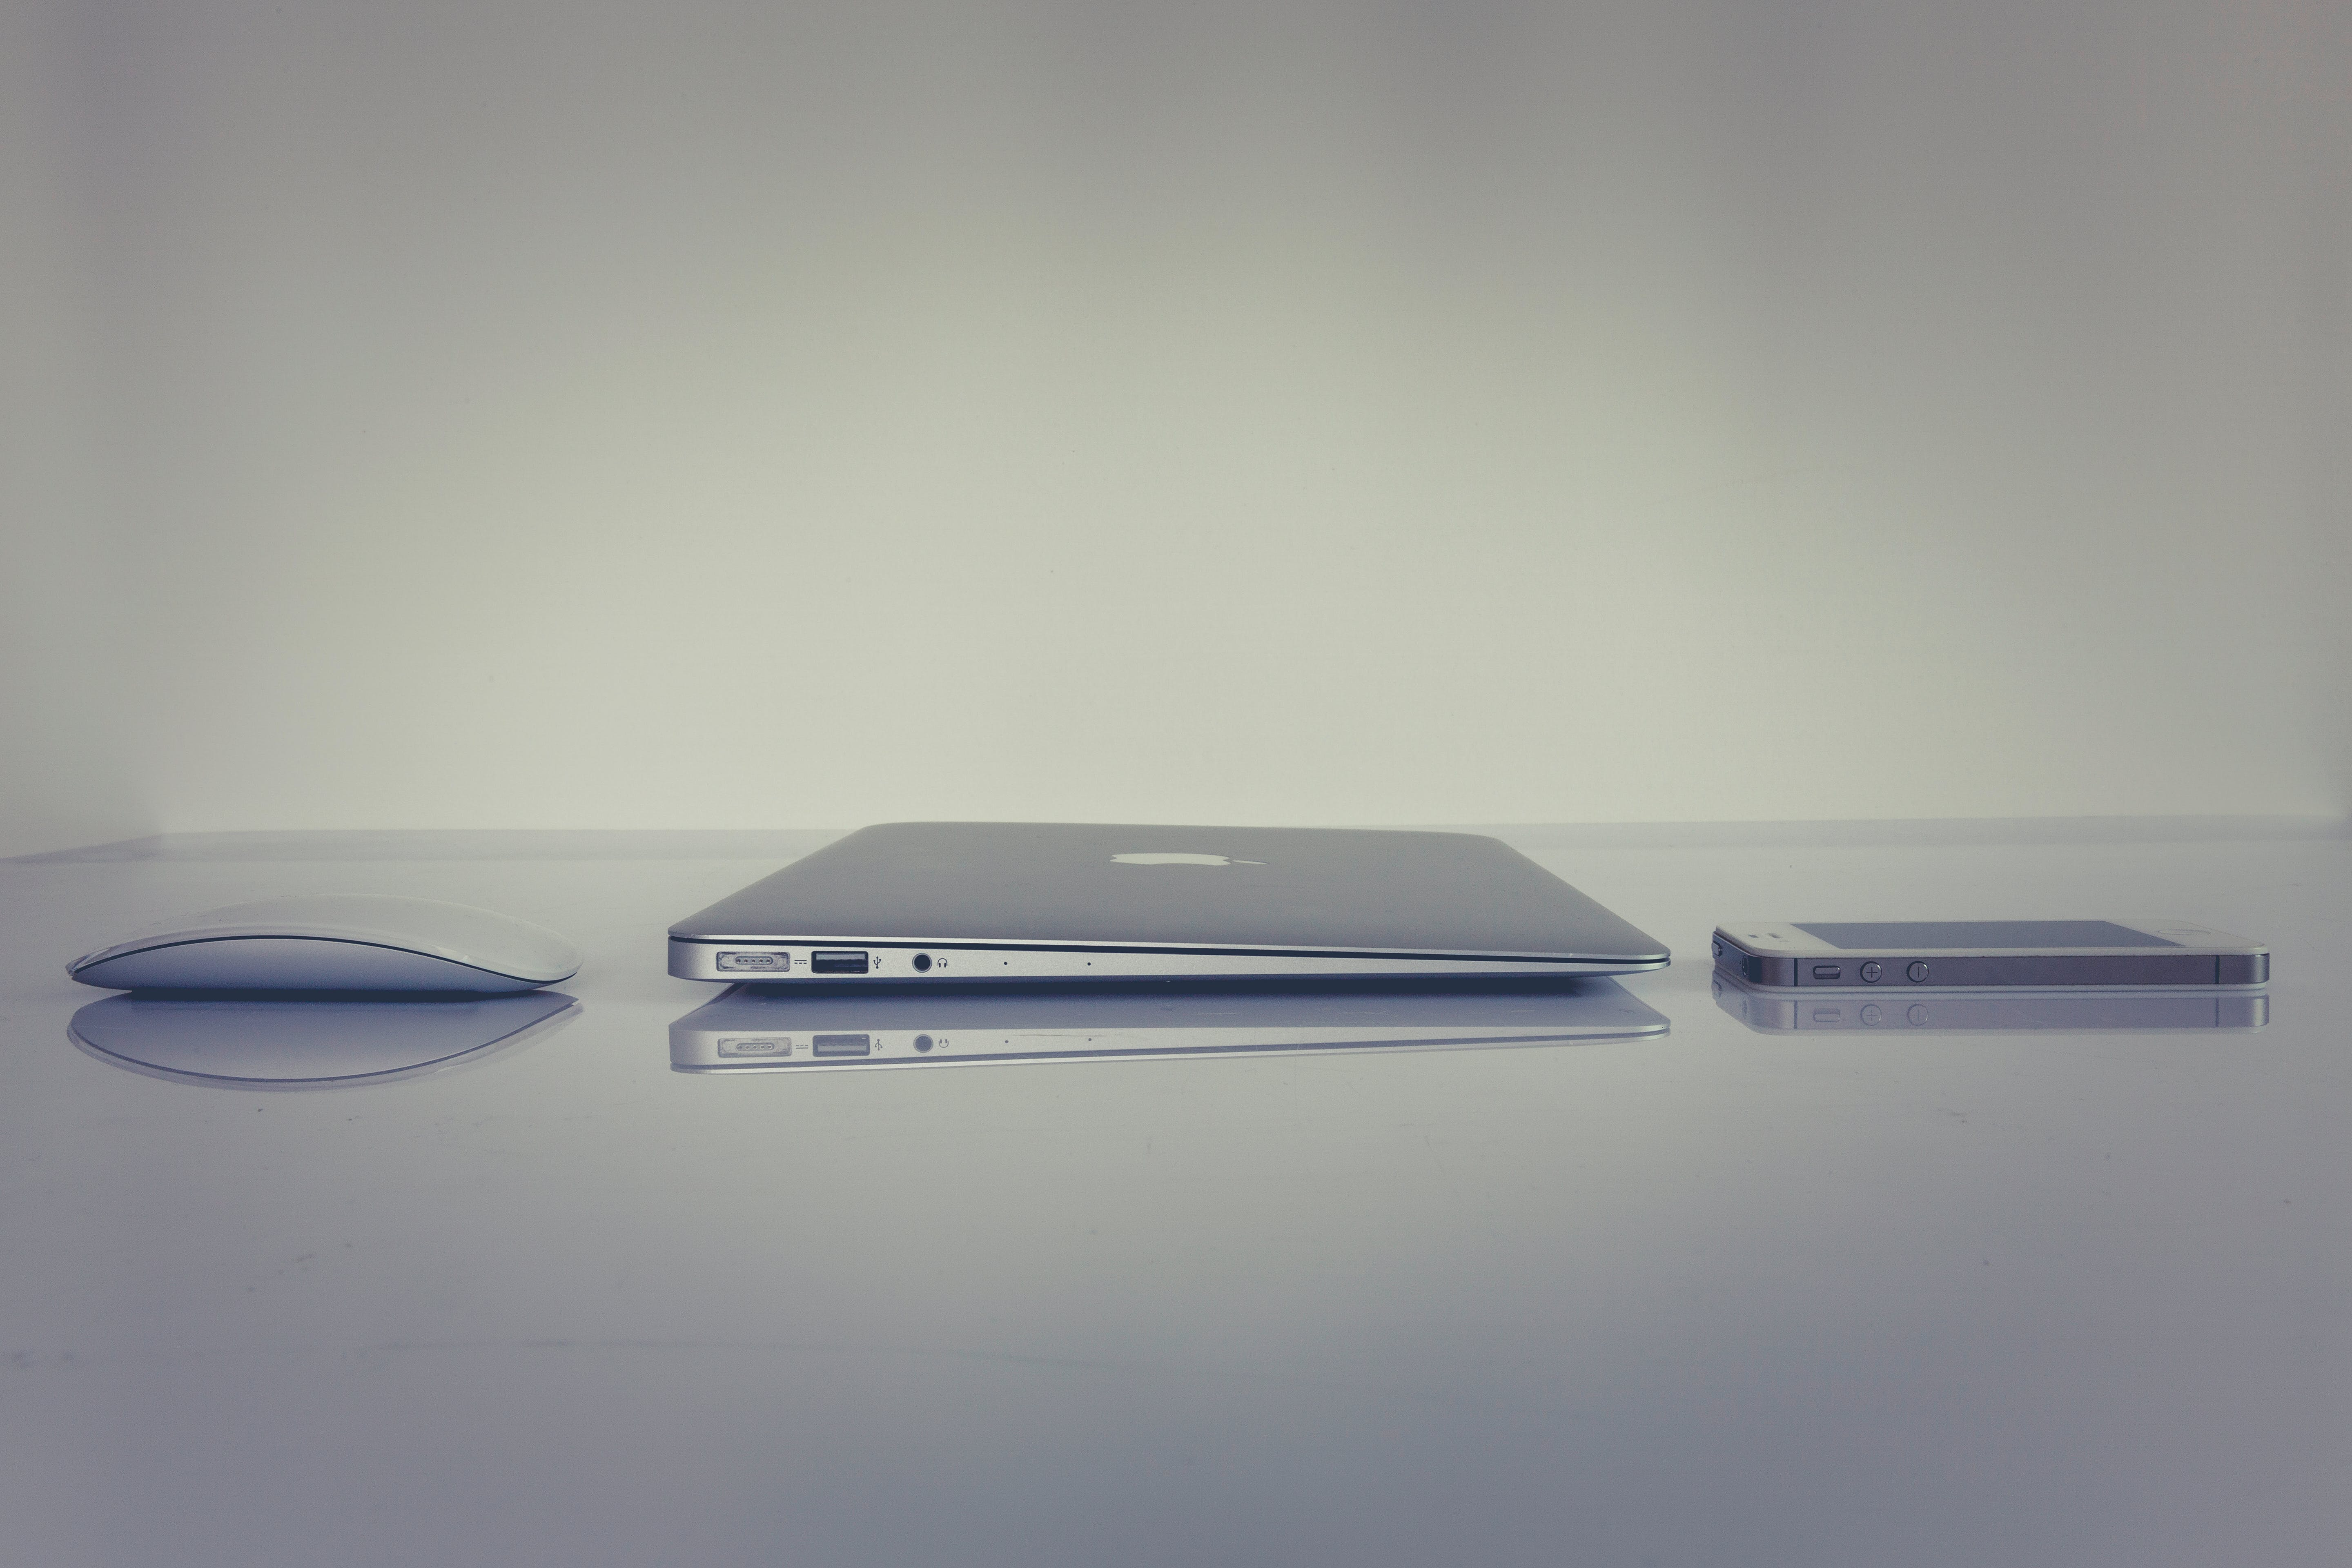 Silver Magic Mouse Beside Macbook